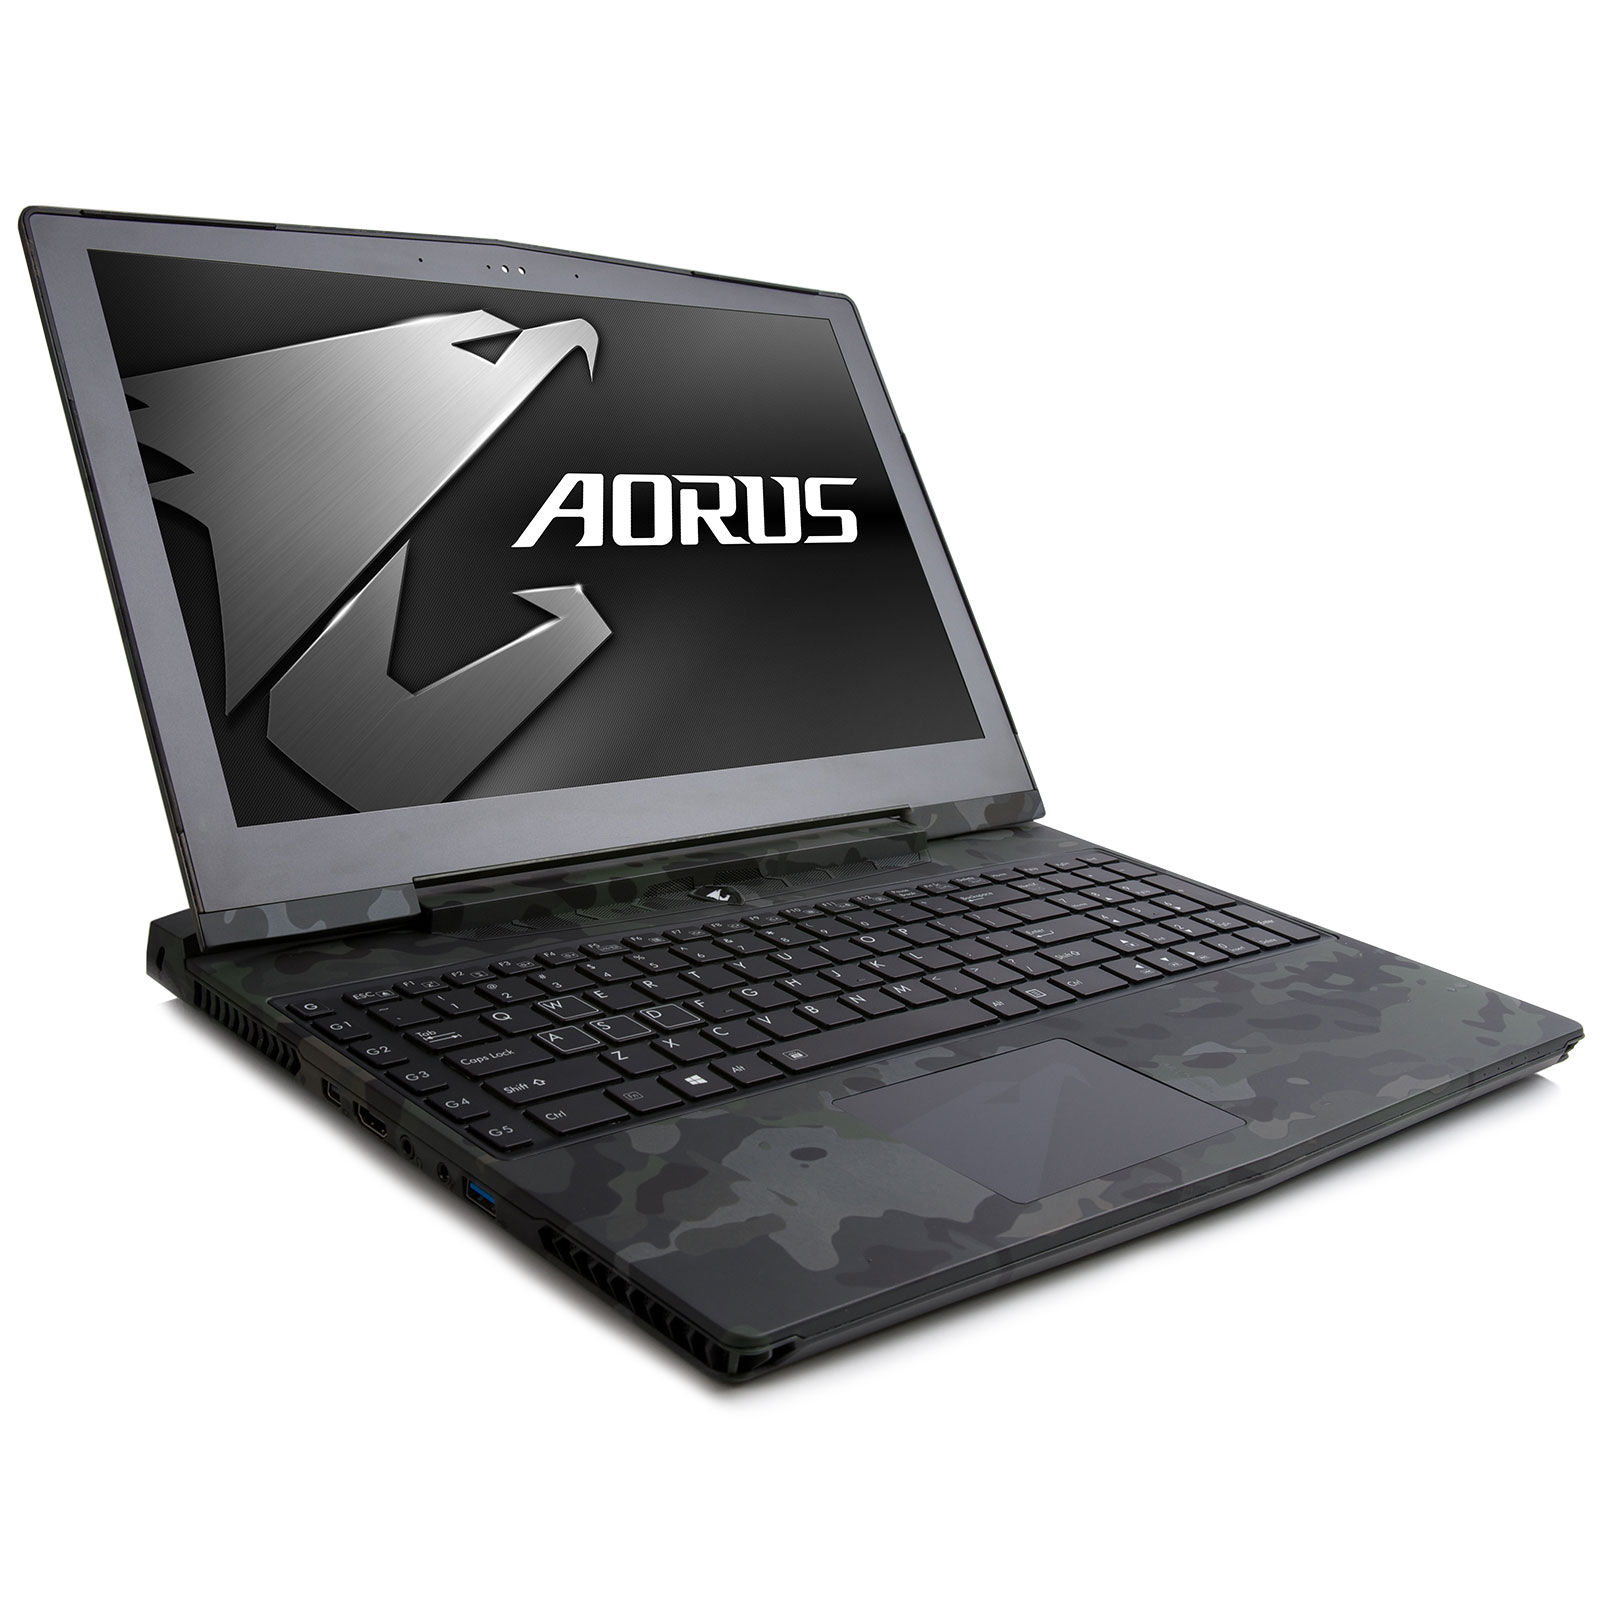 "PC portable AORUS X5S v5 KAMW10-FR Edition limitée Camouflage Intel Core i7-6700HQ 16 Go SSD 256 Go + HDD 1 To 15.6"" LED Ultra HD NVIDIA GeForce GTX 980M Wi-Fi AC/Bluetooth Webcam Windows 10 Famille 64 bits"